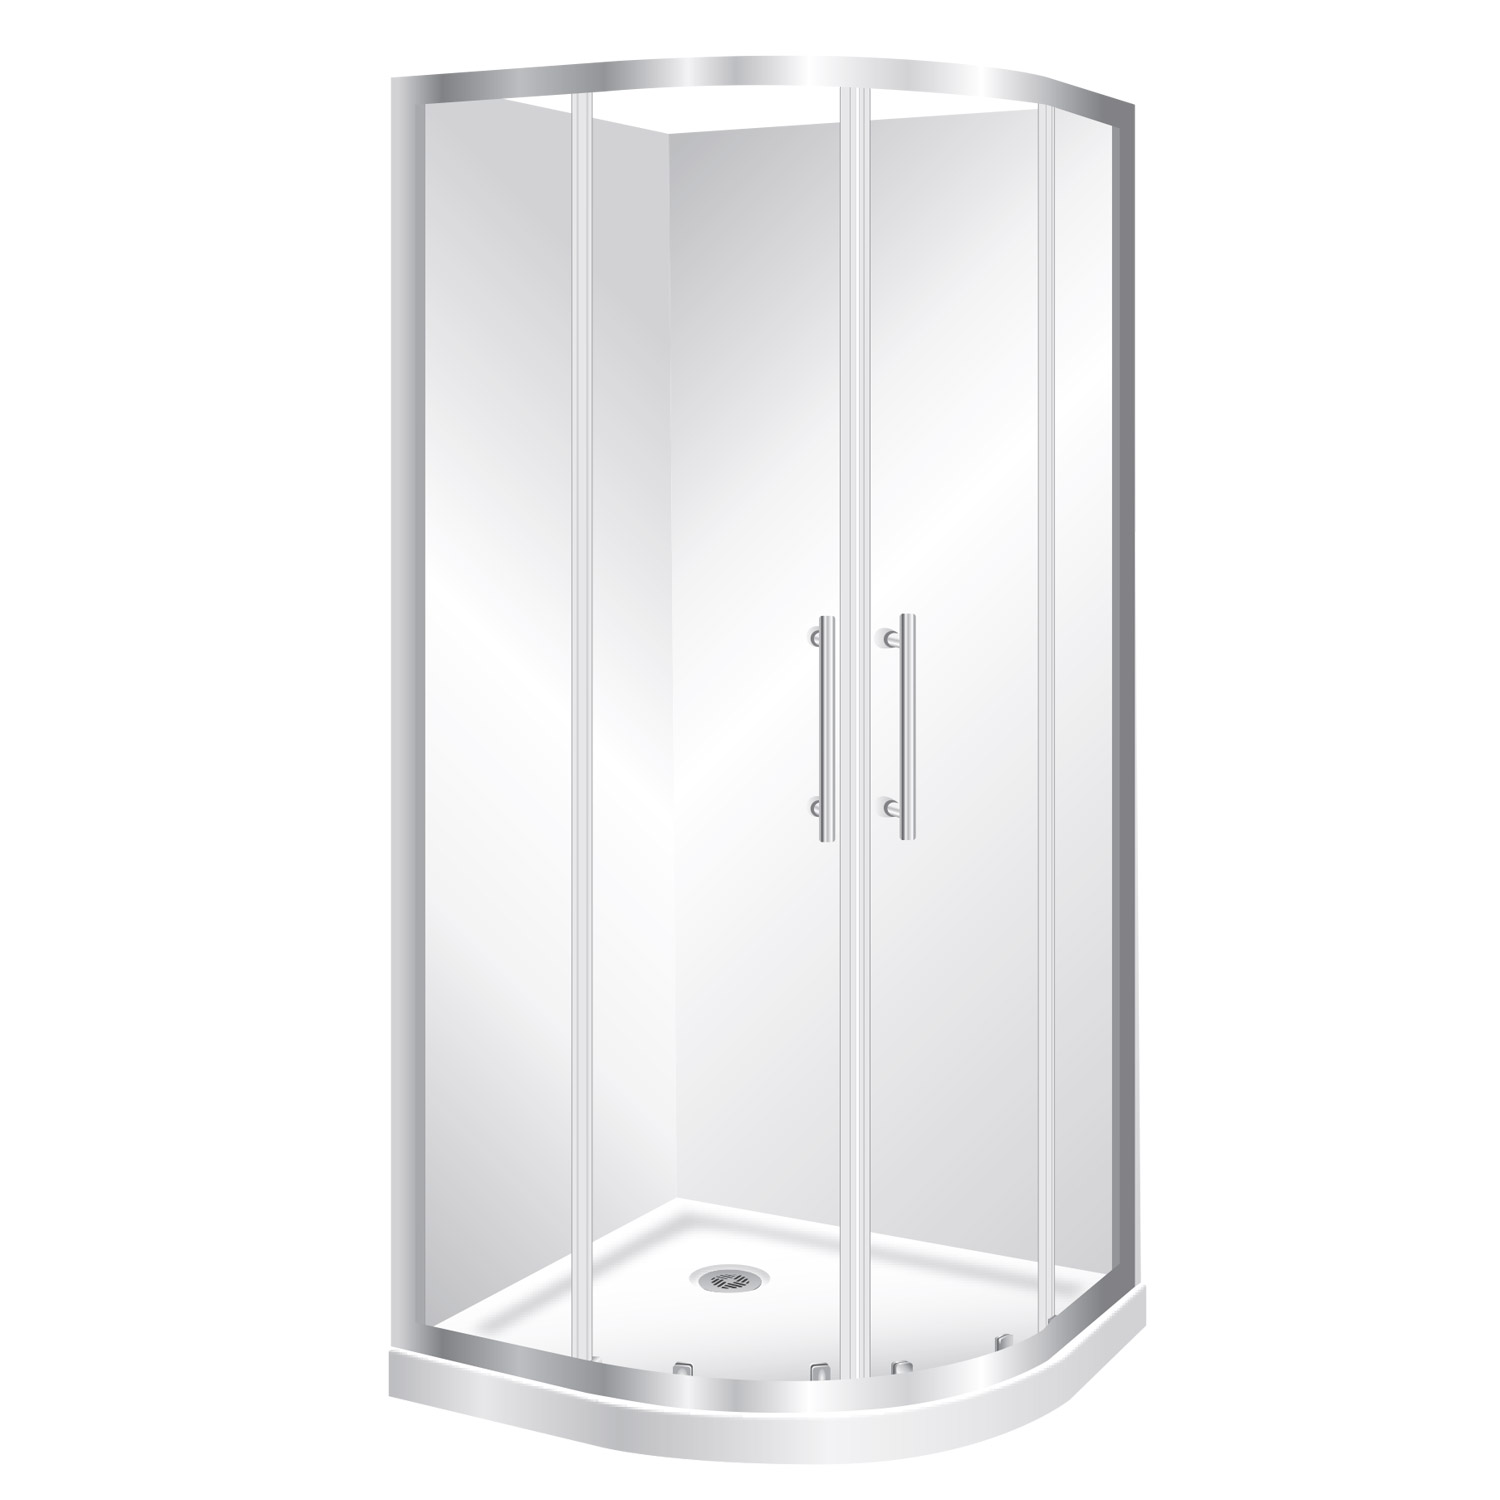 rounded corner showers